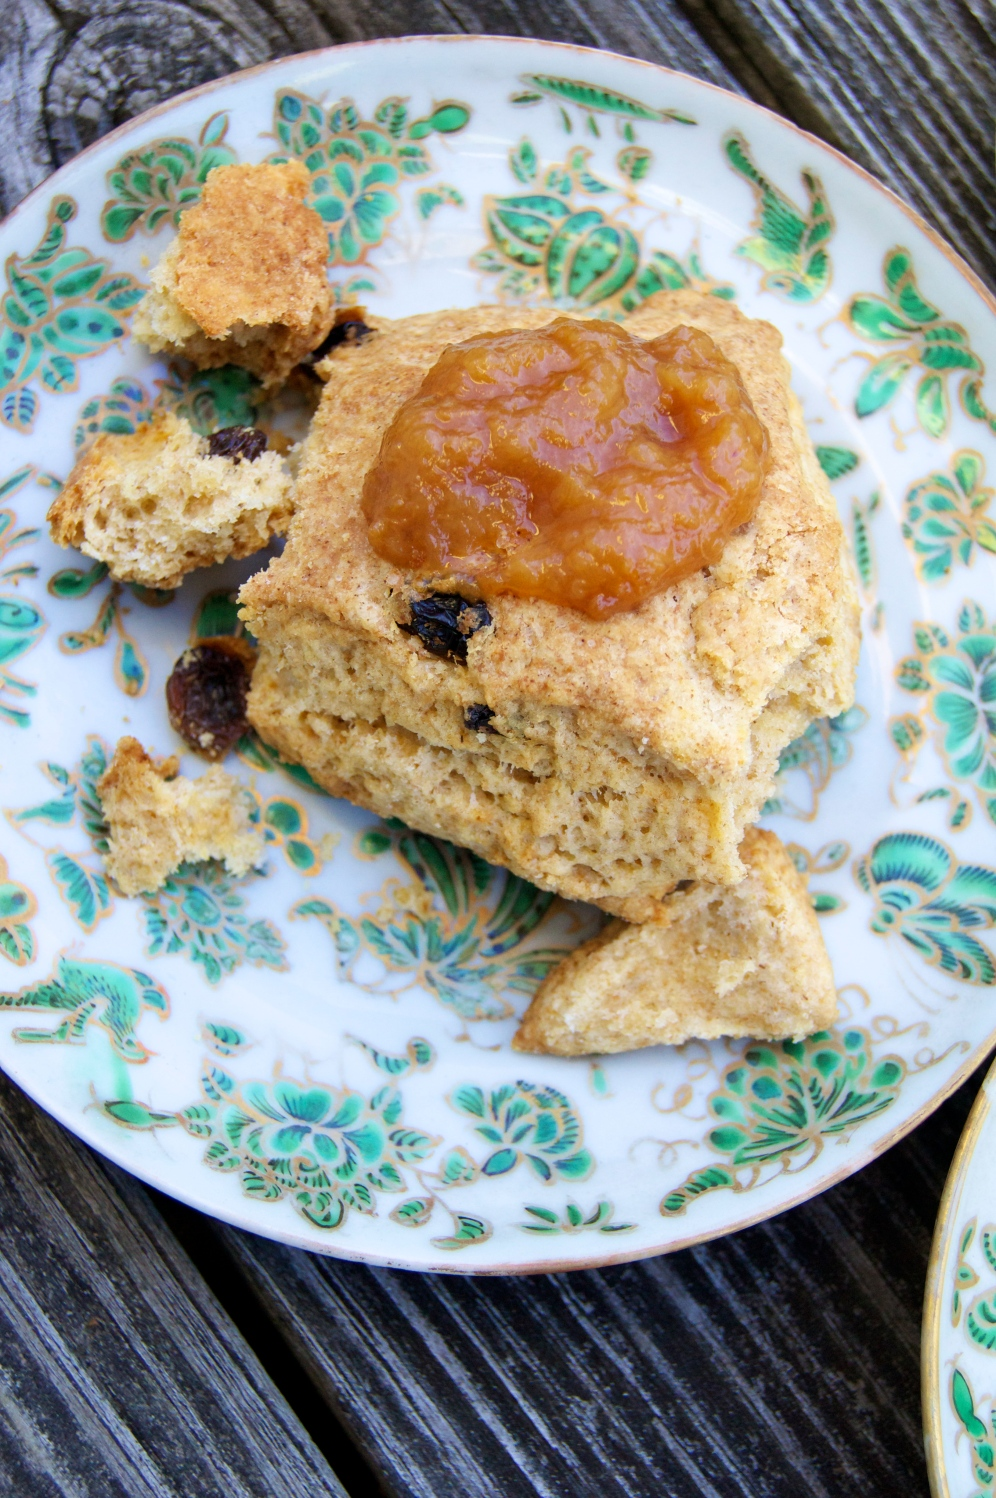 ginger golden raisin scone